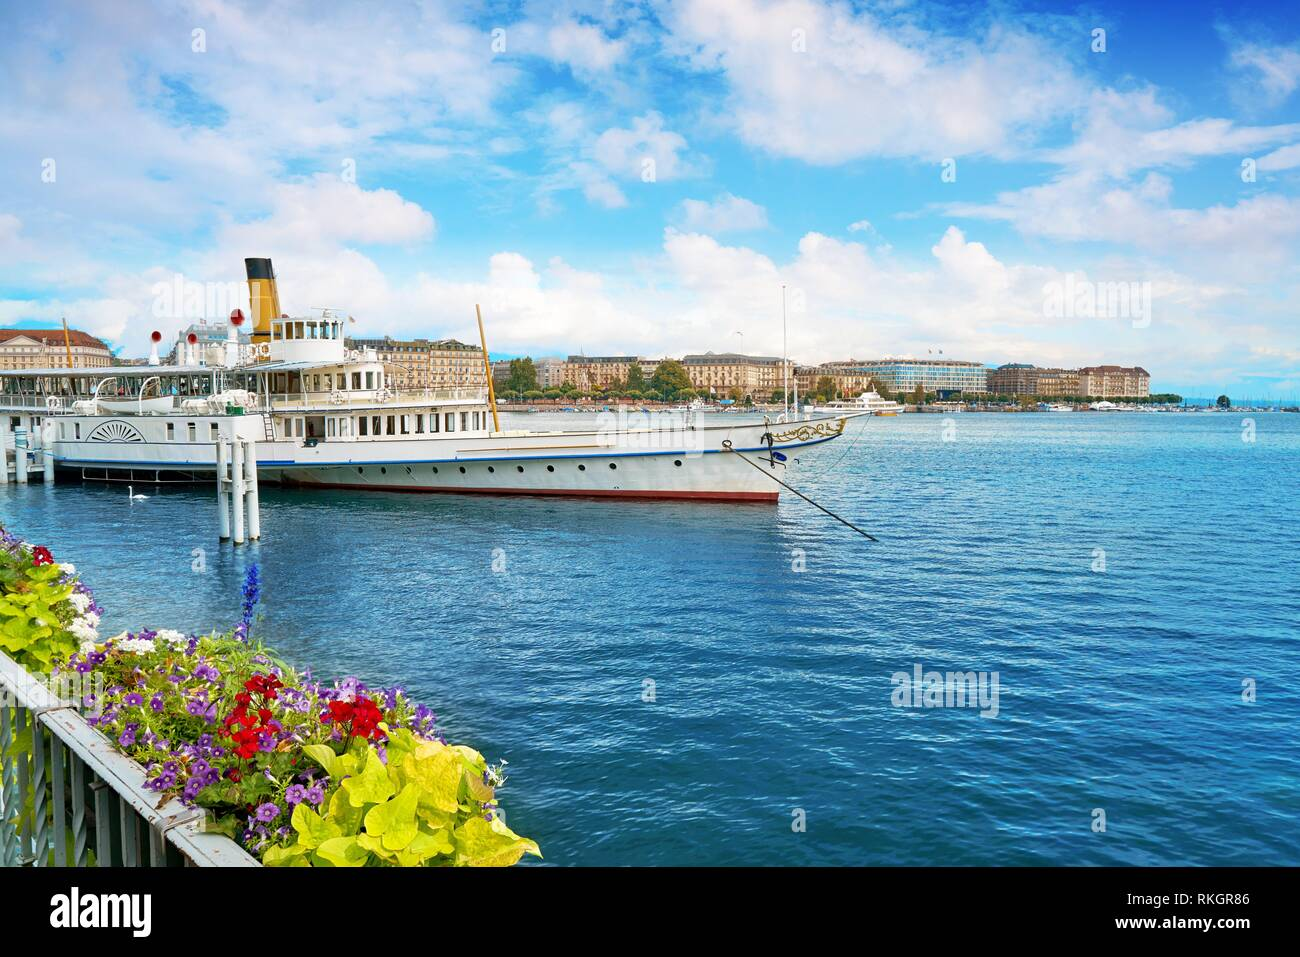 Geneva Geneve Leman lake Switzerland Swiss. - Stock Image